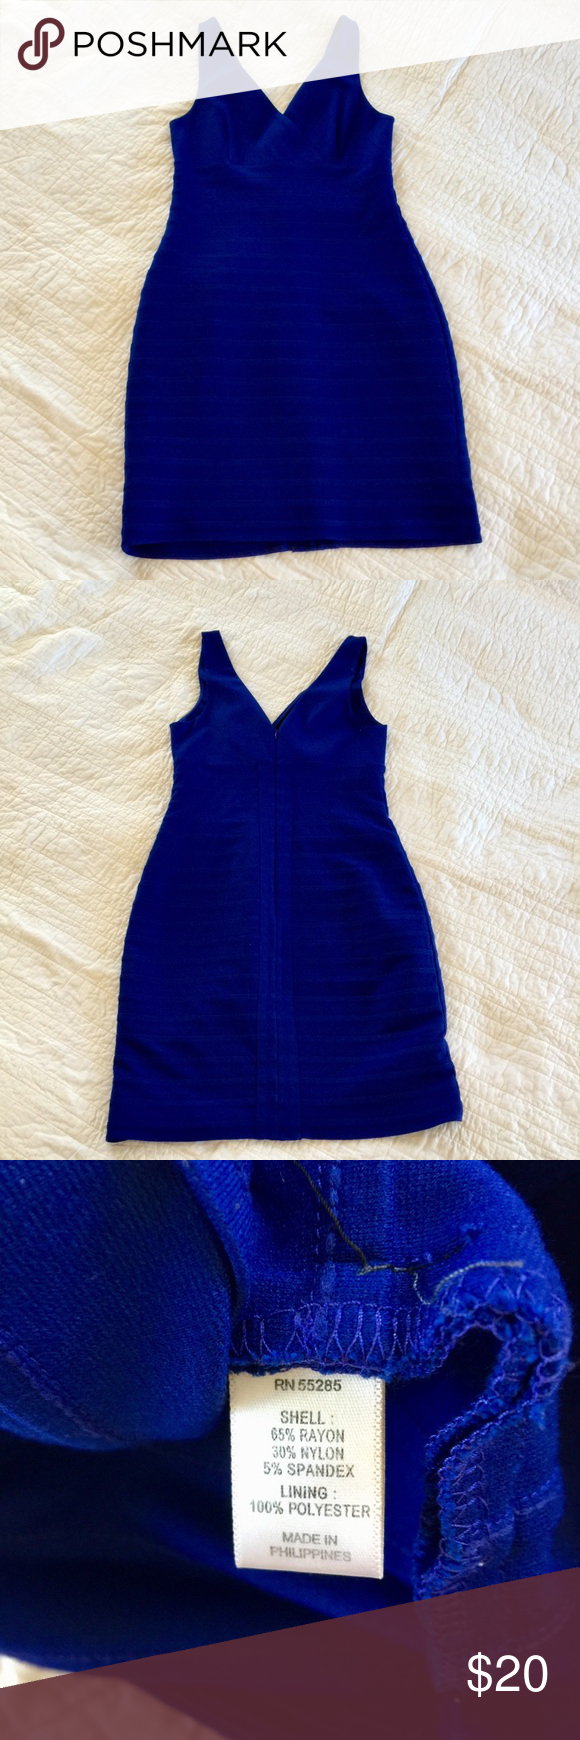 Blue bandage body con cocktail dress by Express   Blue cocktail ...